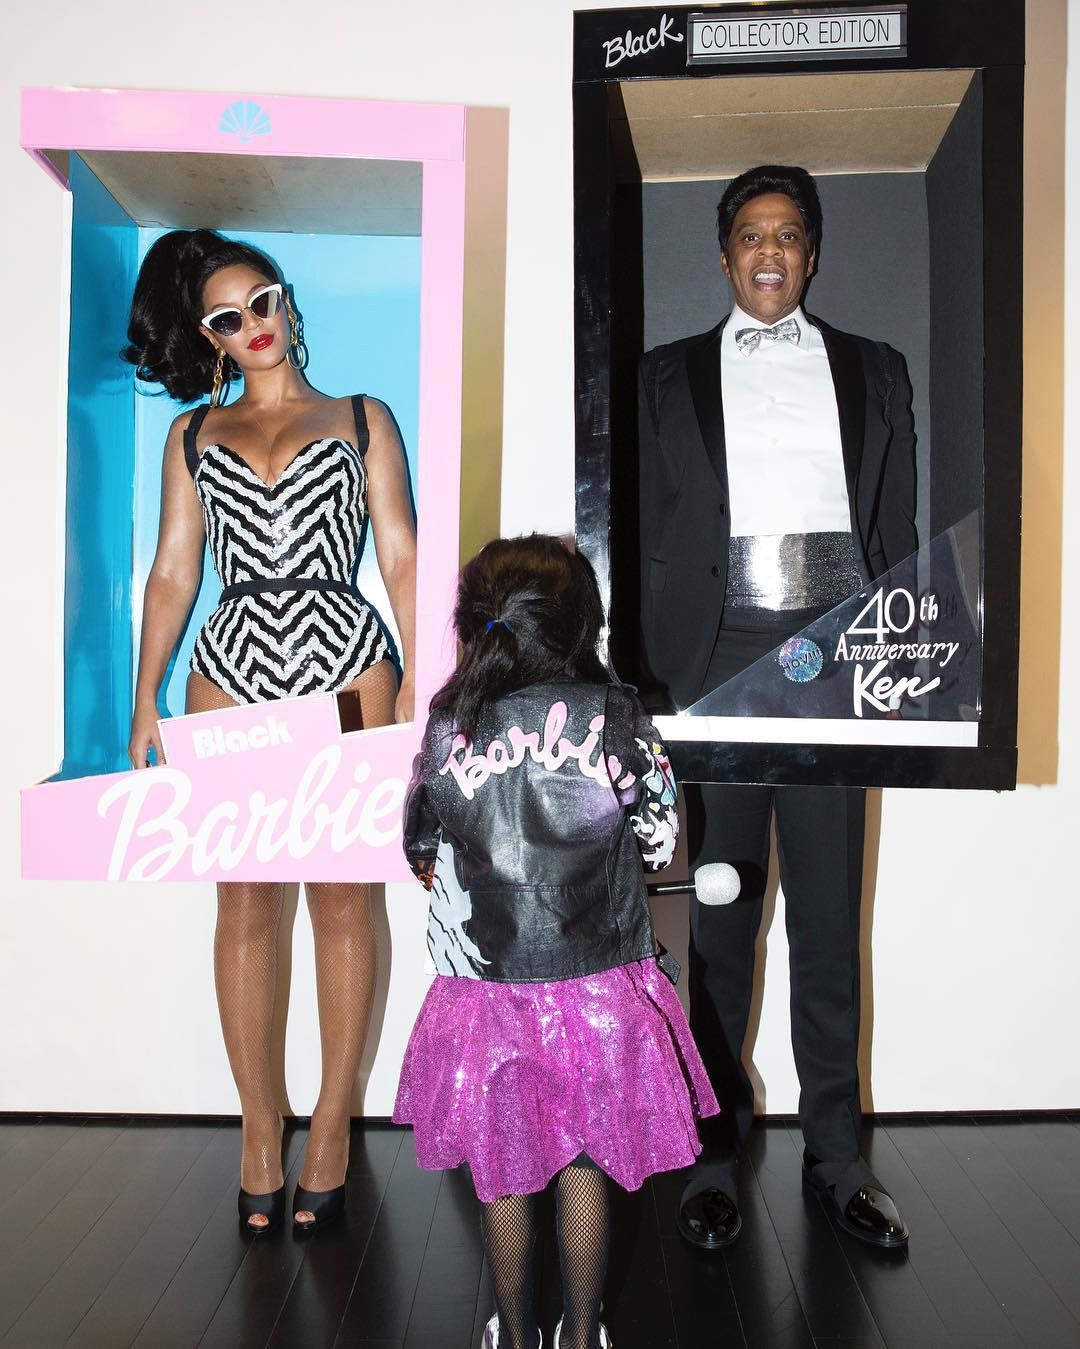 Beyoncé, Jay Z and Blue Ivy as Black Barbie and Ken dolls for Halloween (2016)